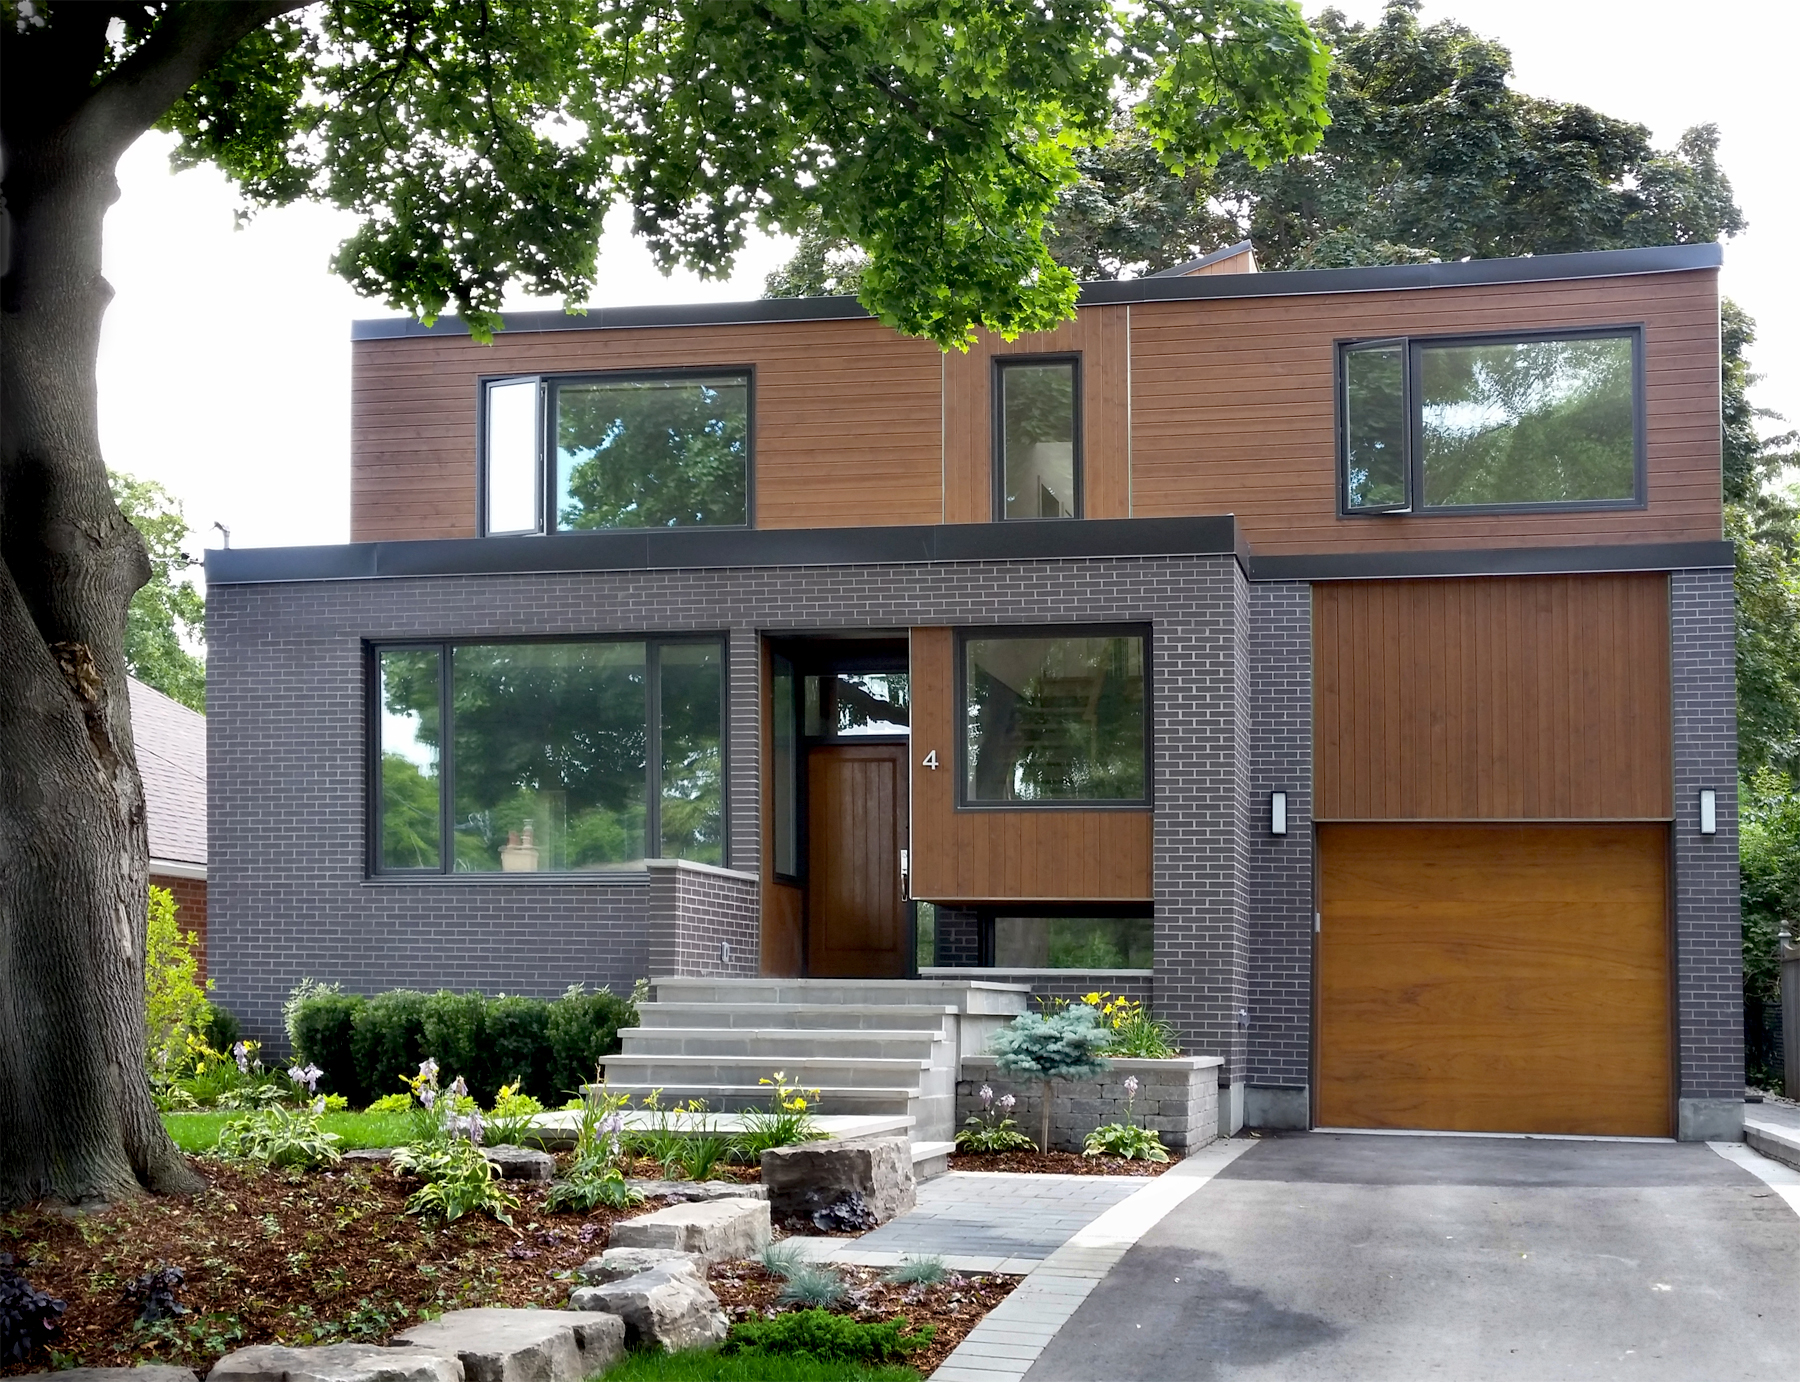 Energy Efficient Renovations : Combining renovations and additions with an overall energy